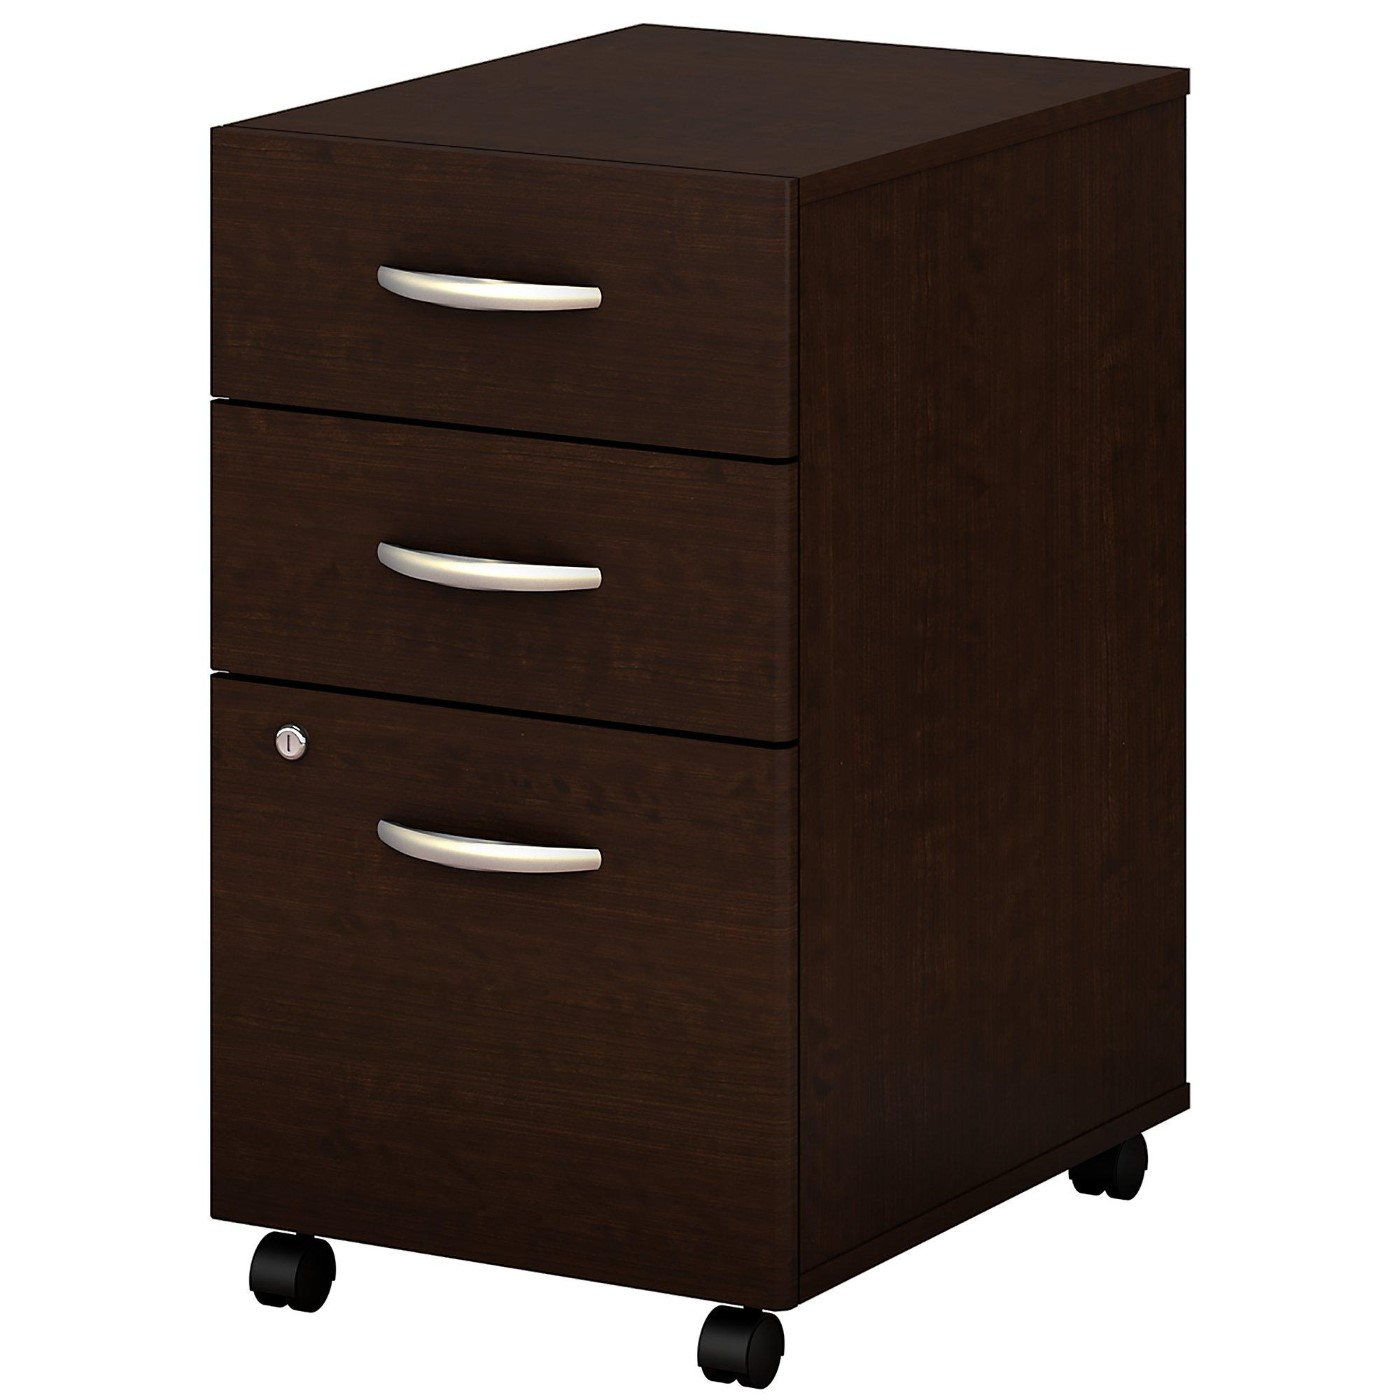 <font color=#c60><b>BUSH BUSINESS FURNITURE SERIES C 3 DRAWER MOBILE FILE CABINET. FREE SHIPPING</font></b>